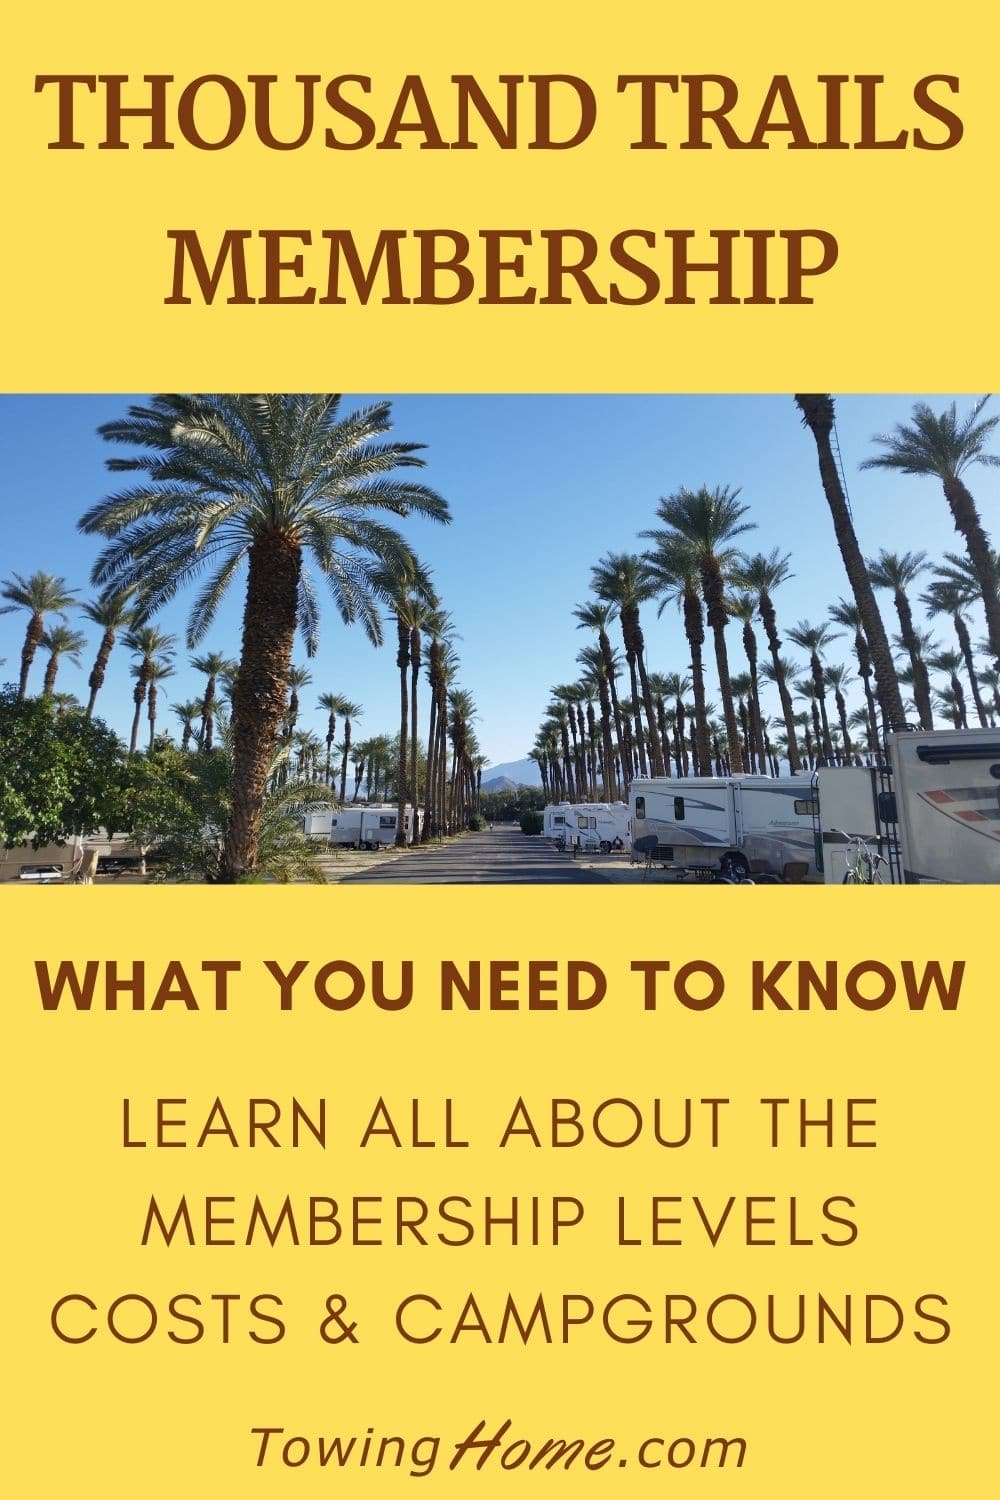 Thousand Trails Membership (What You Need to Know)